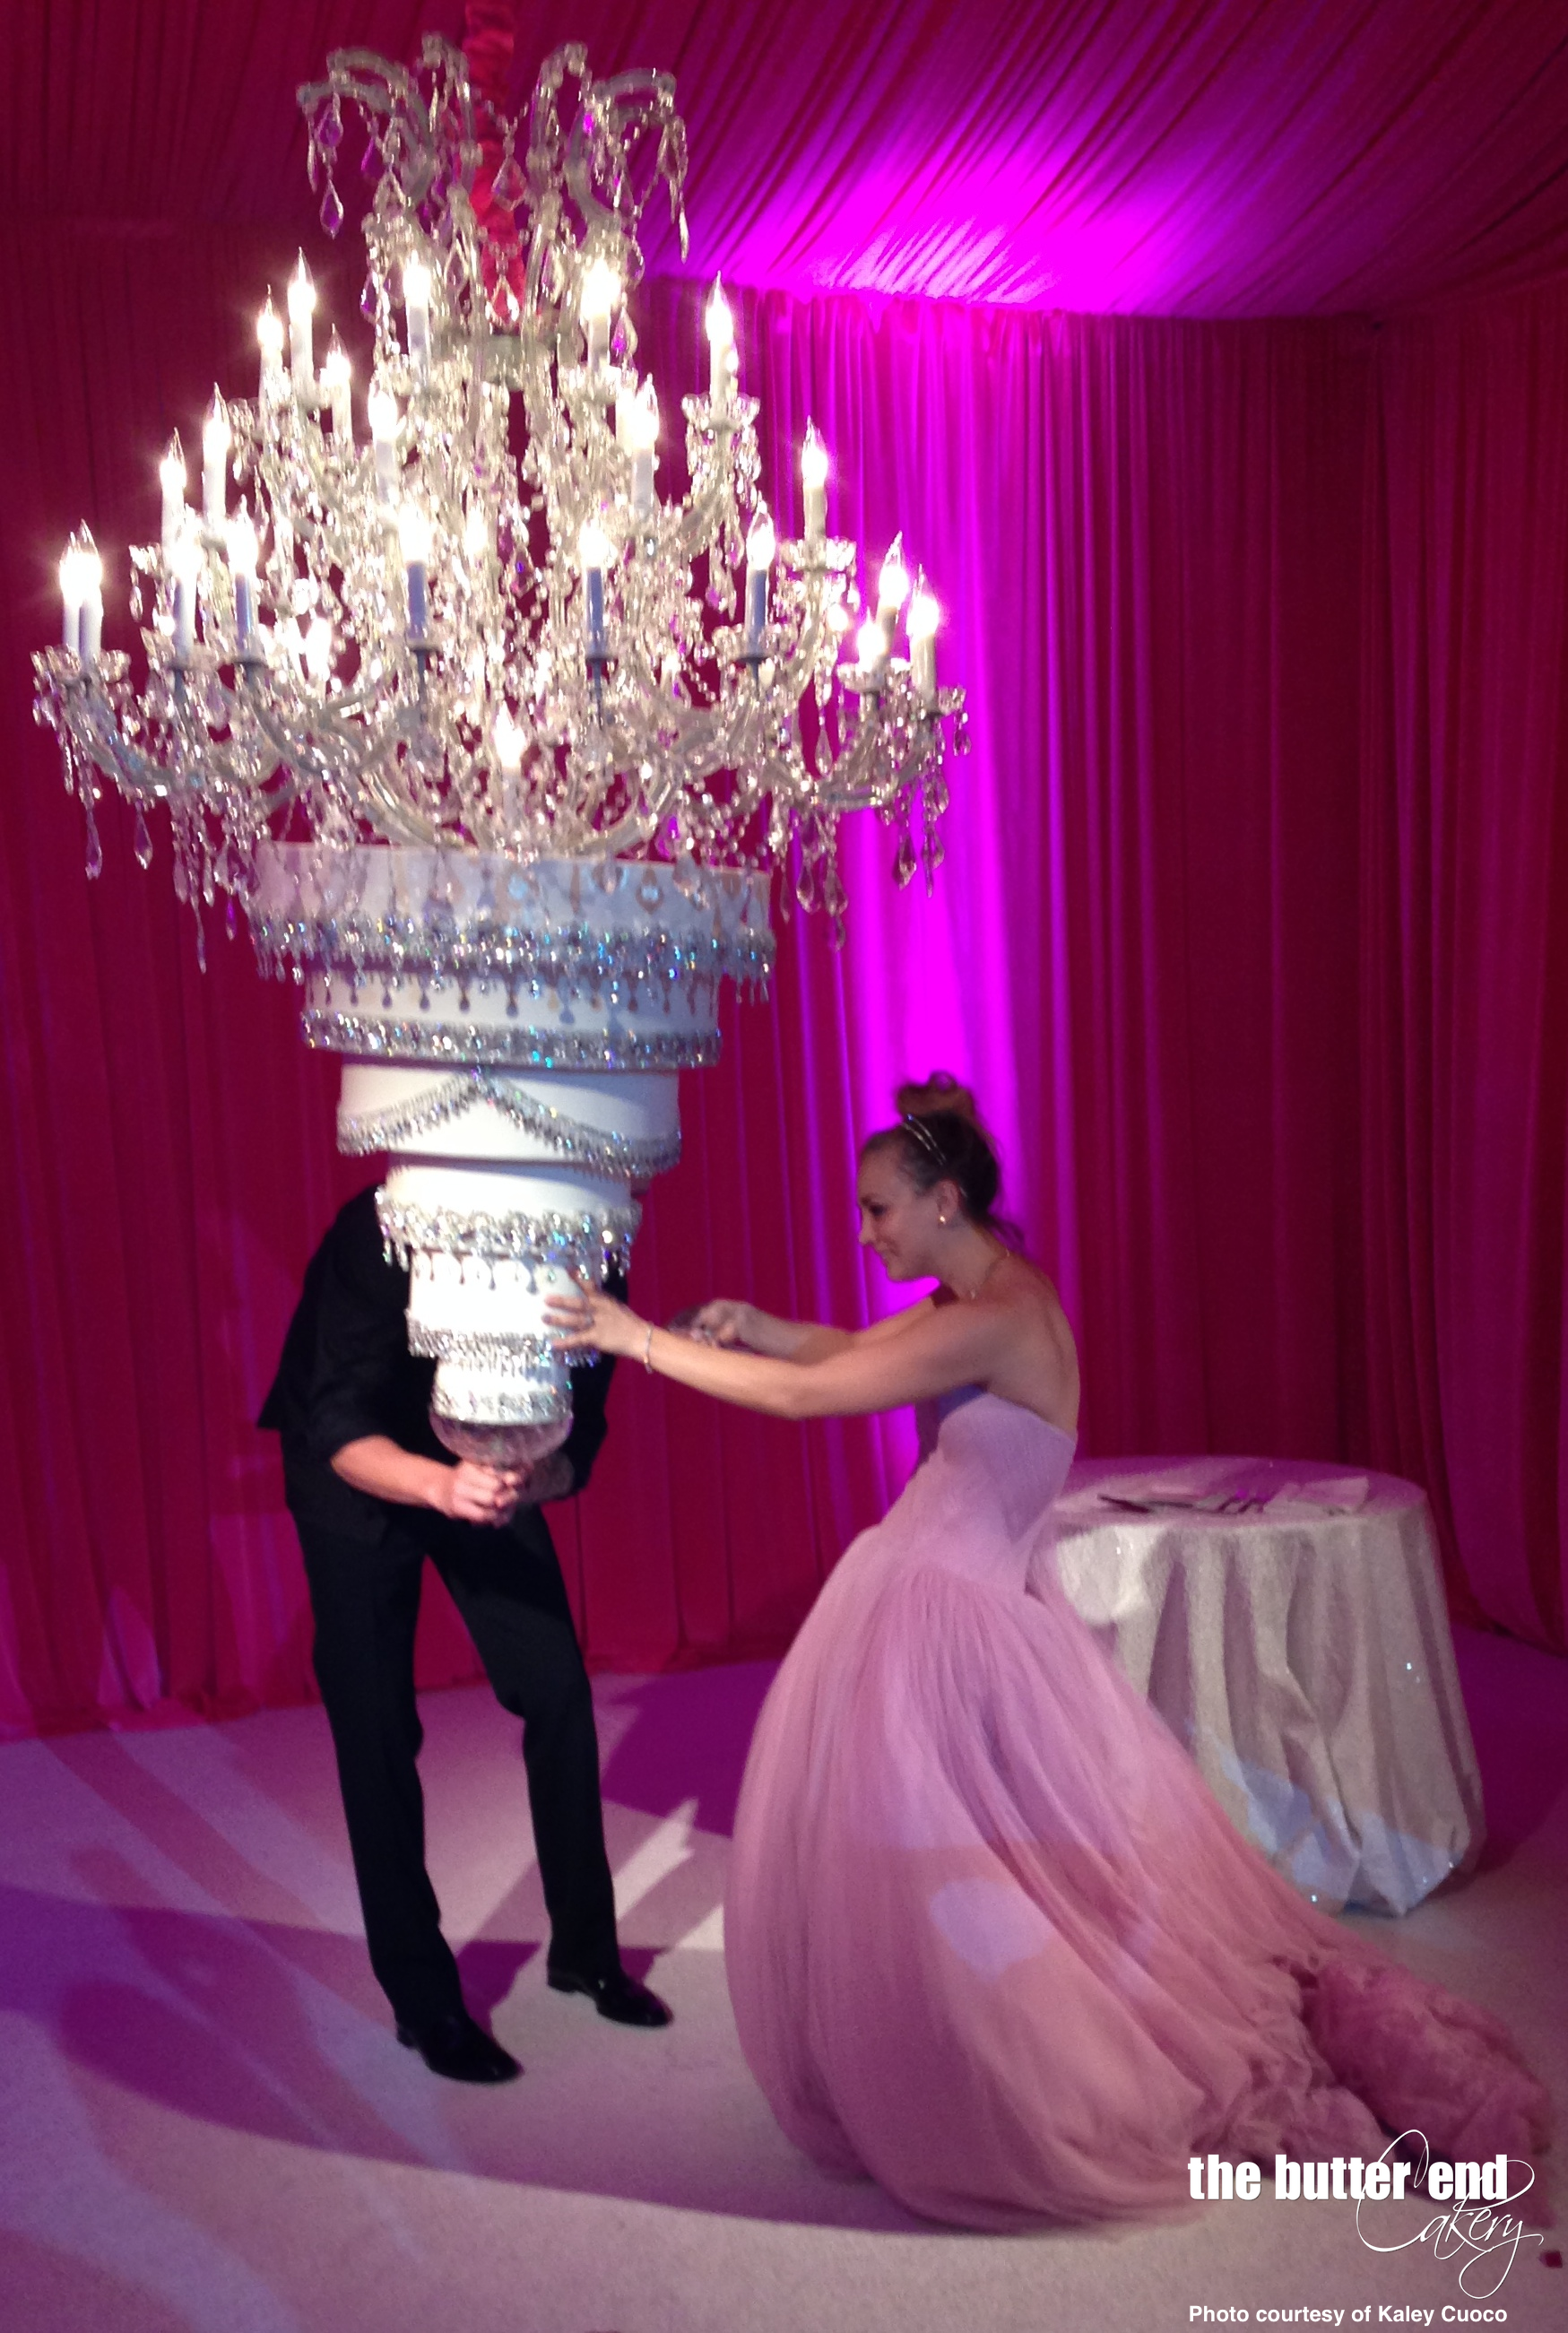 Kaley Cuoco S Upside Down Chandelier Cake The Butter End Cakery Chandelier Cake Wedding Chandelier Hanging Cake